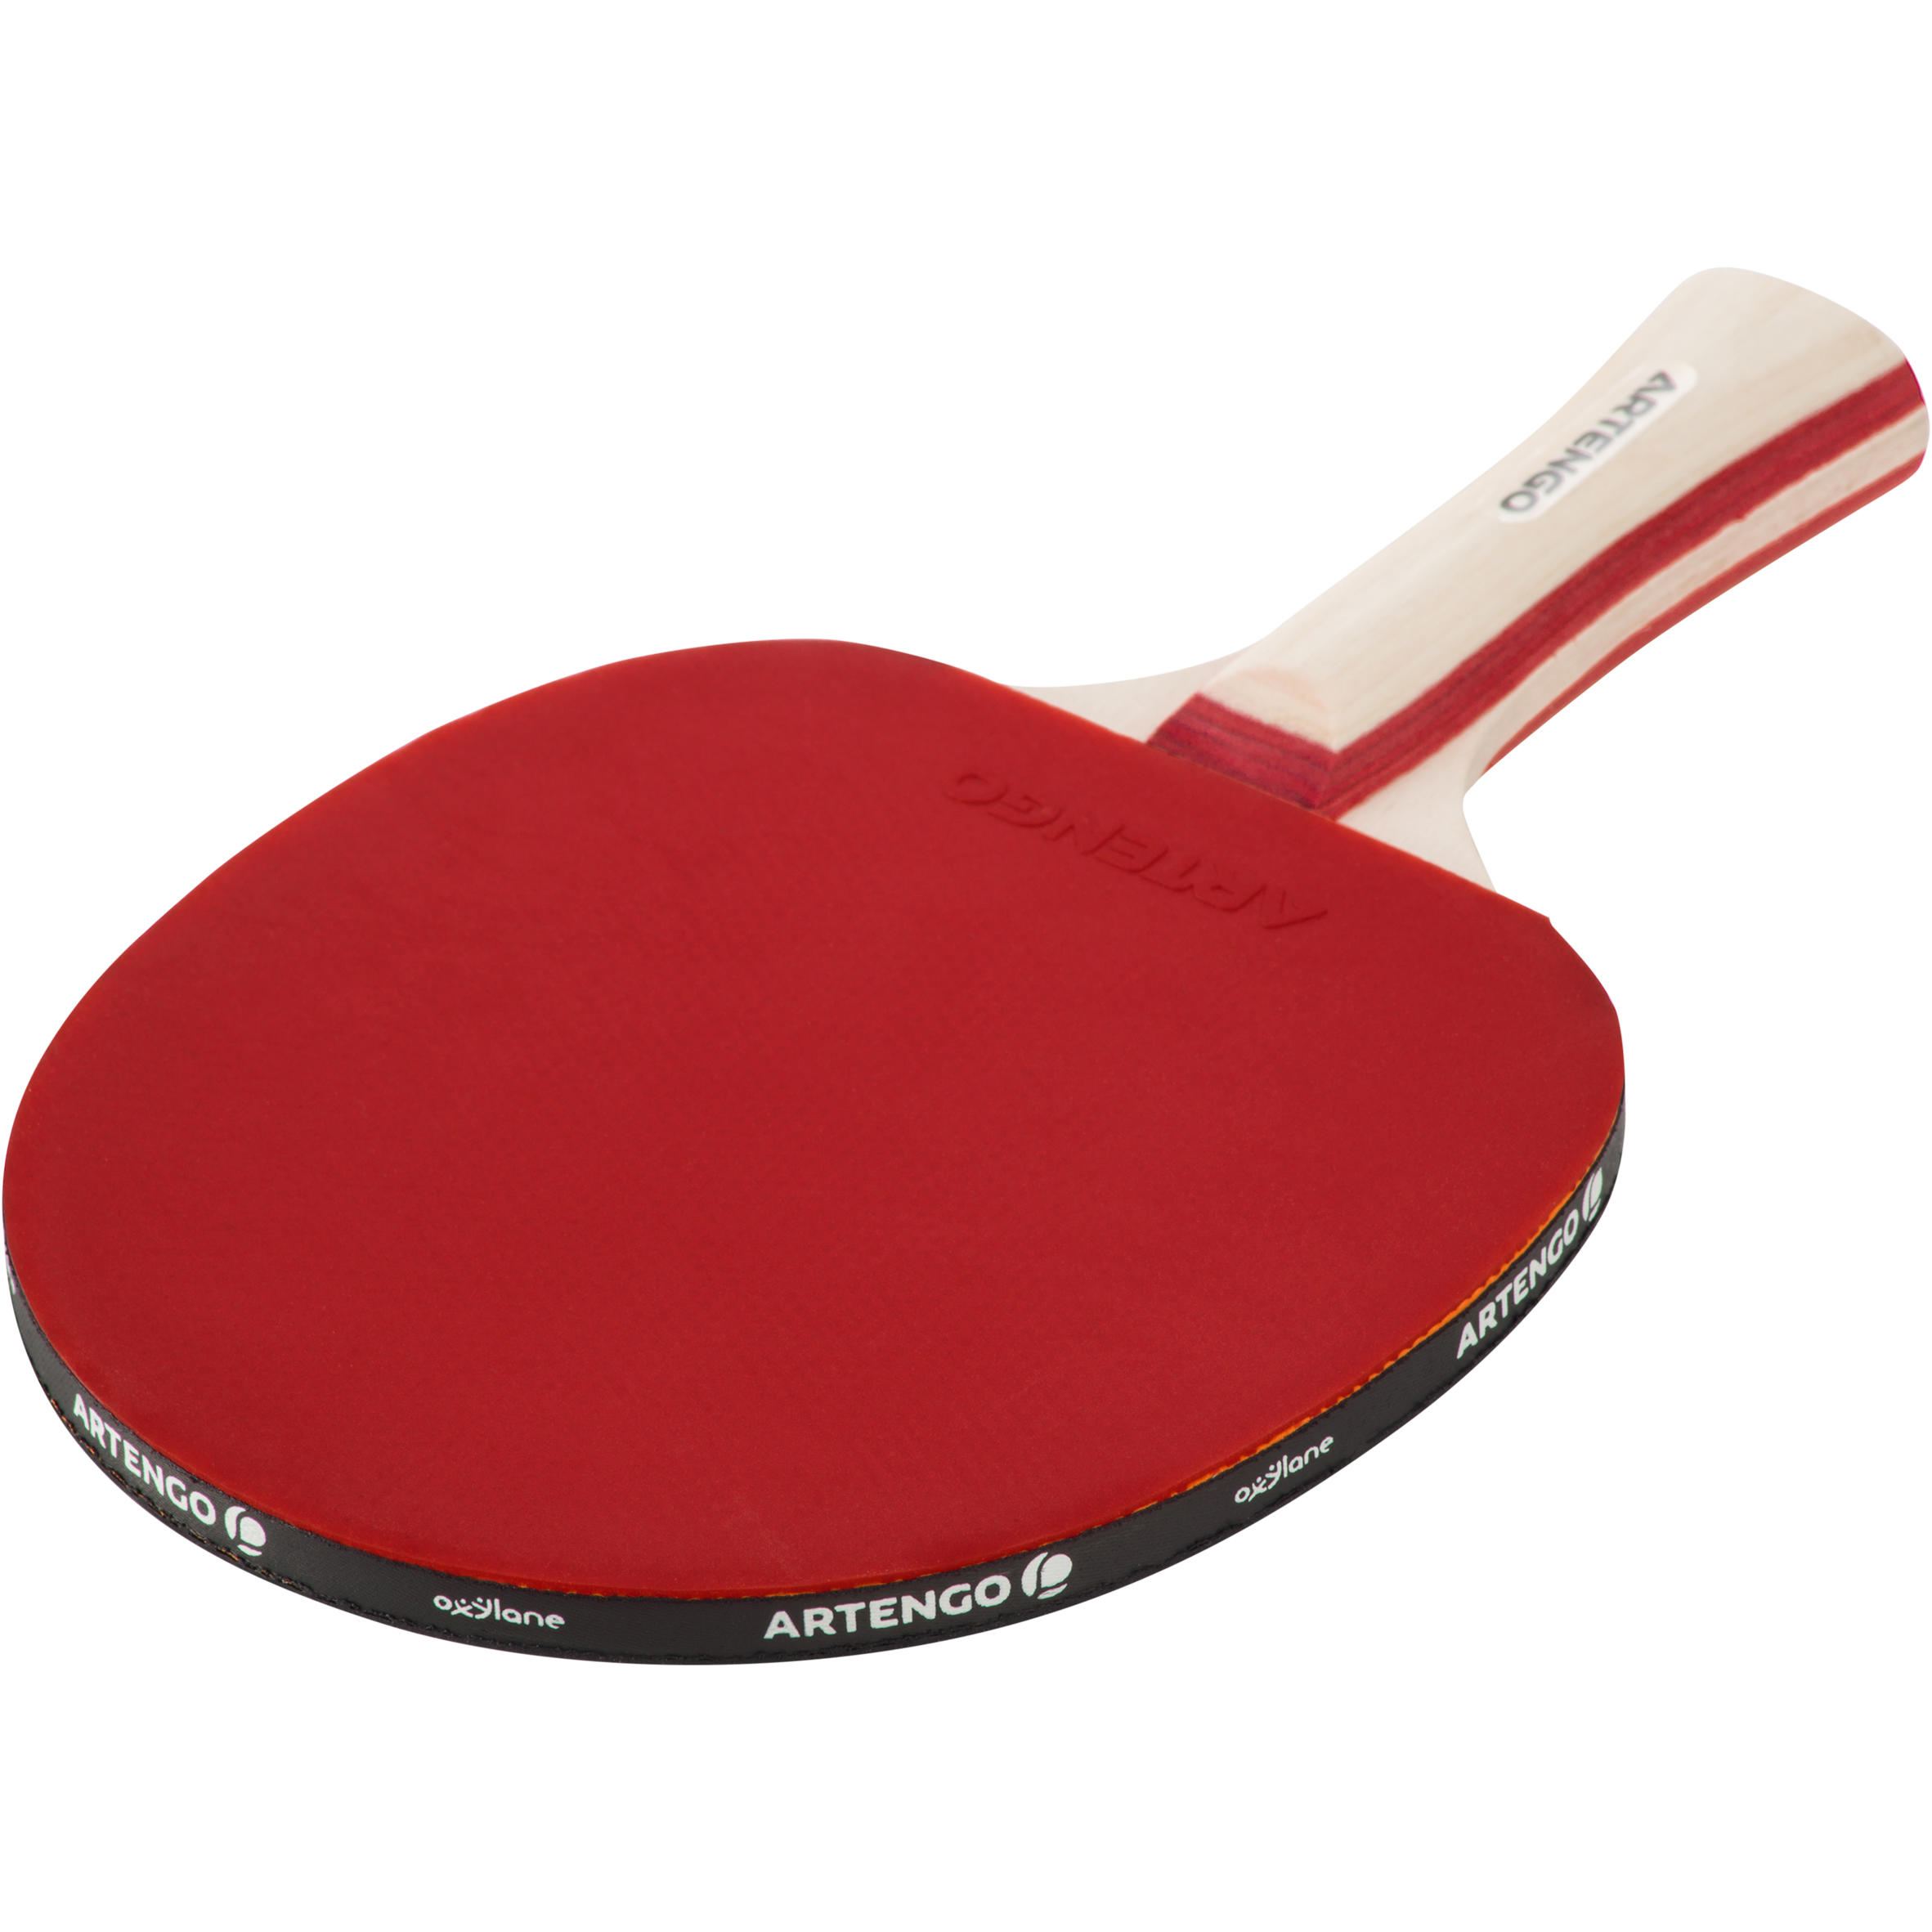 RAQUETTE DE TENNIS DE TABLE FREE PPR 130 / FR 130 INDOOR